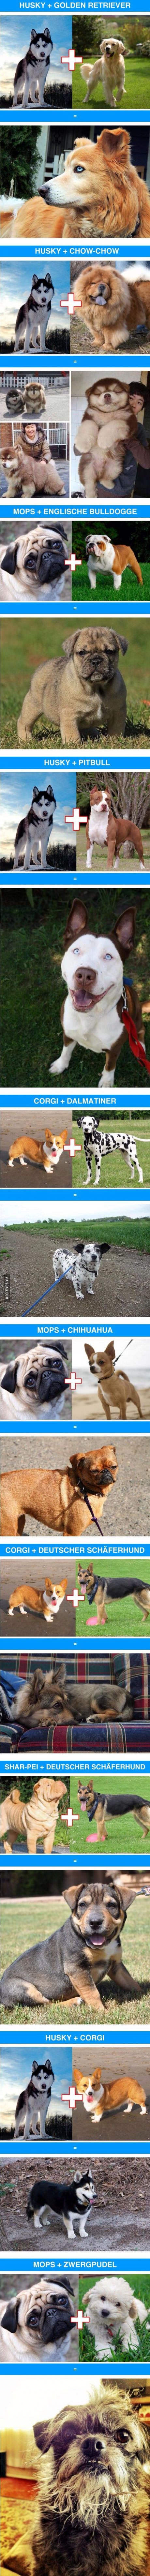 OMG THE MOPS AND CHIHUAHUA I CAN'T STOP LAUGHING